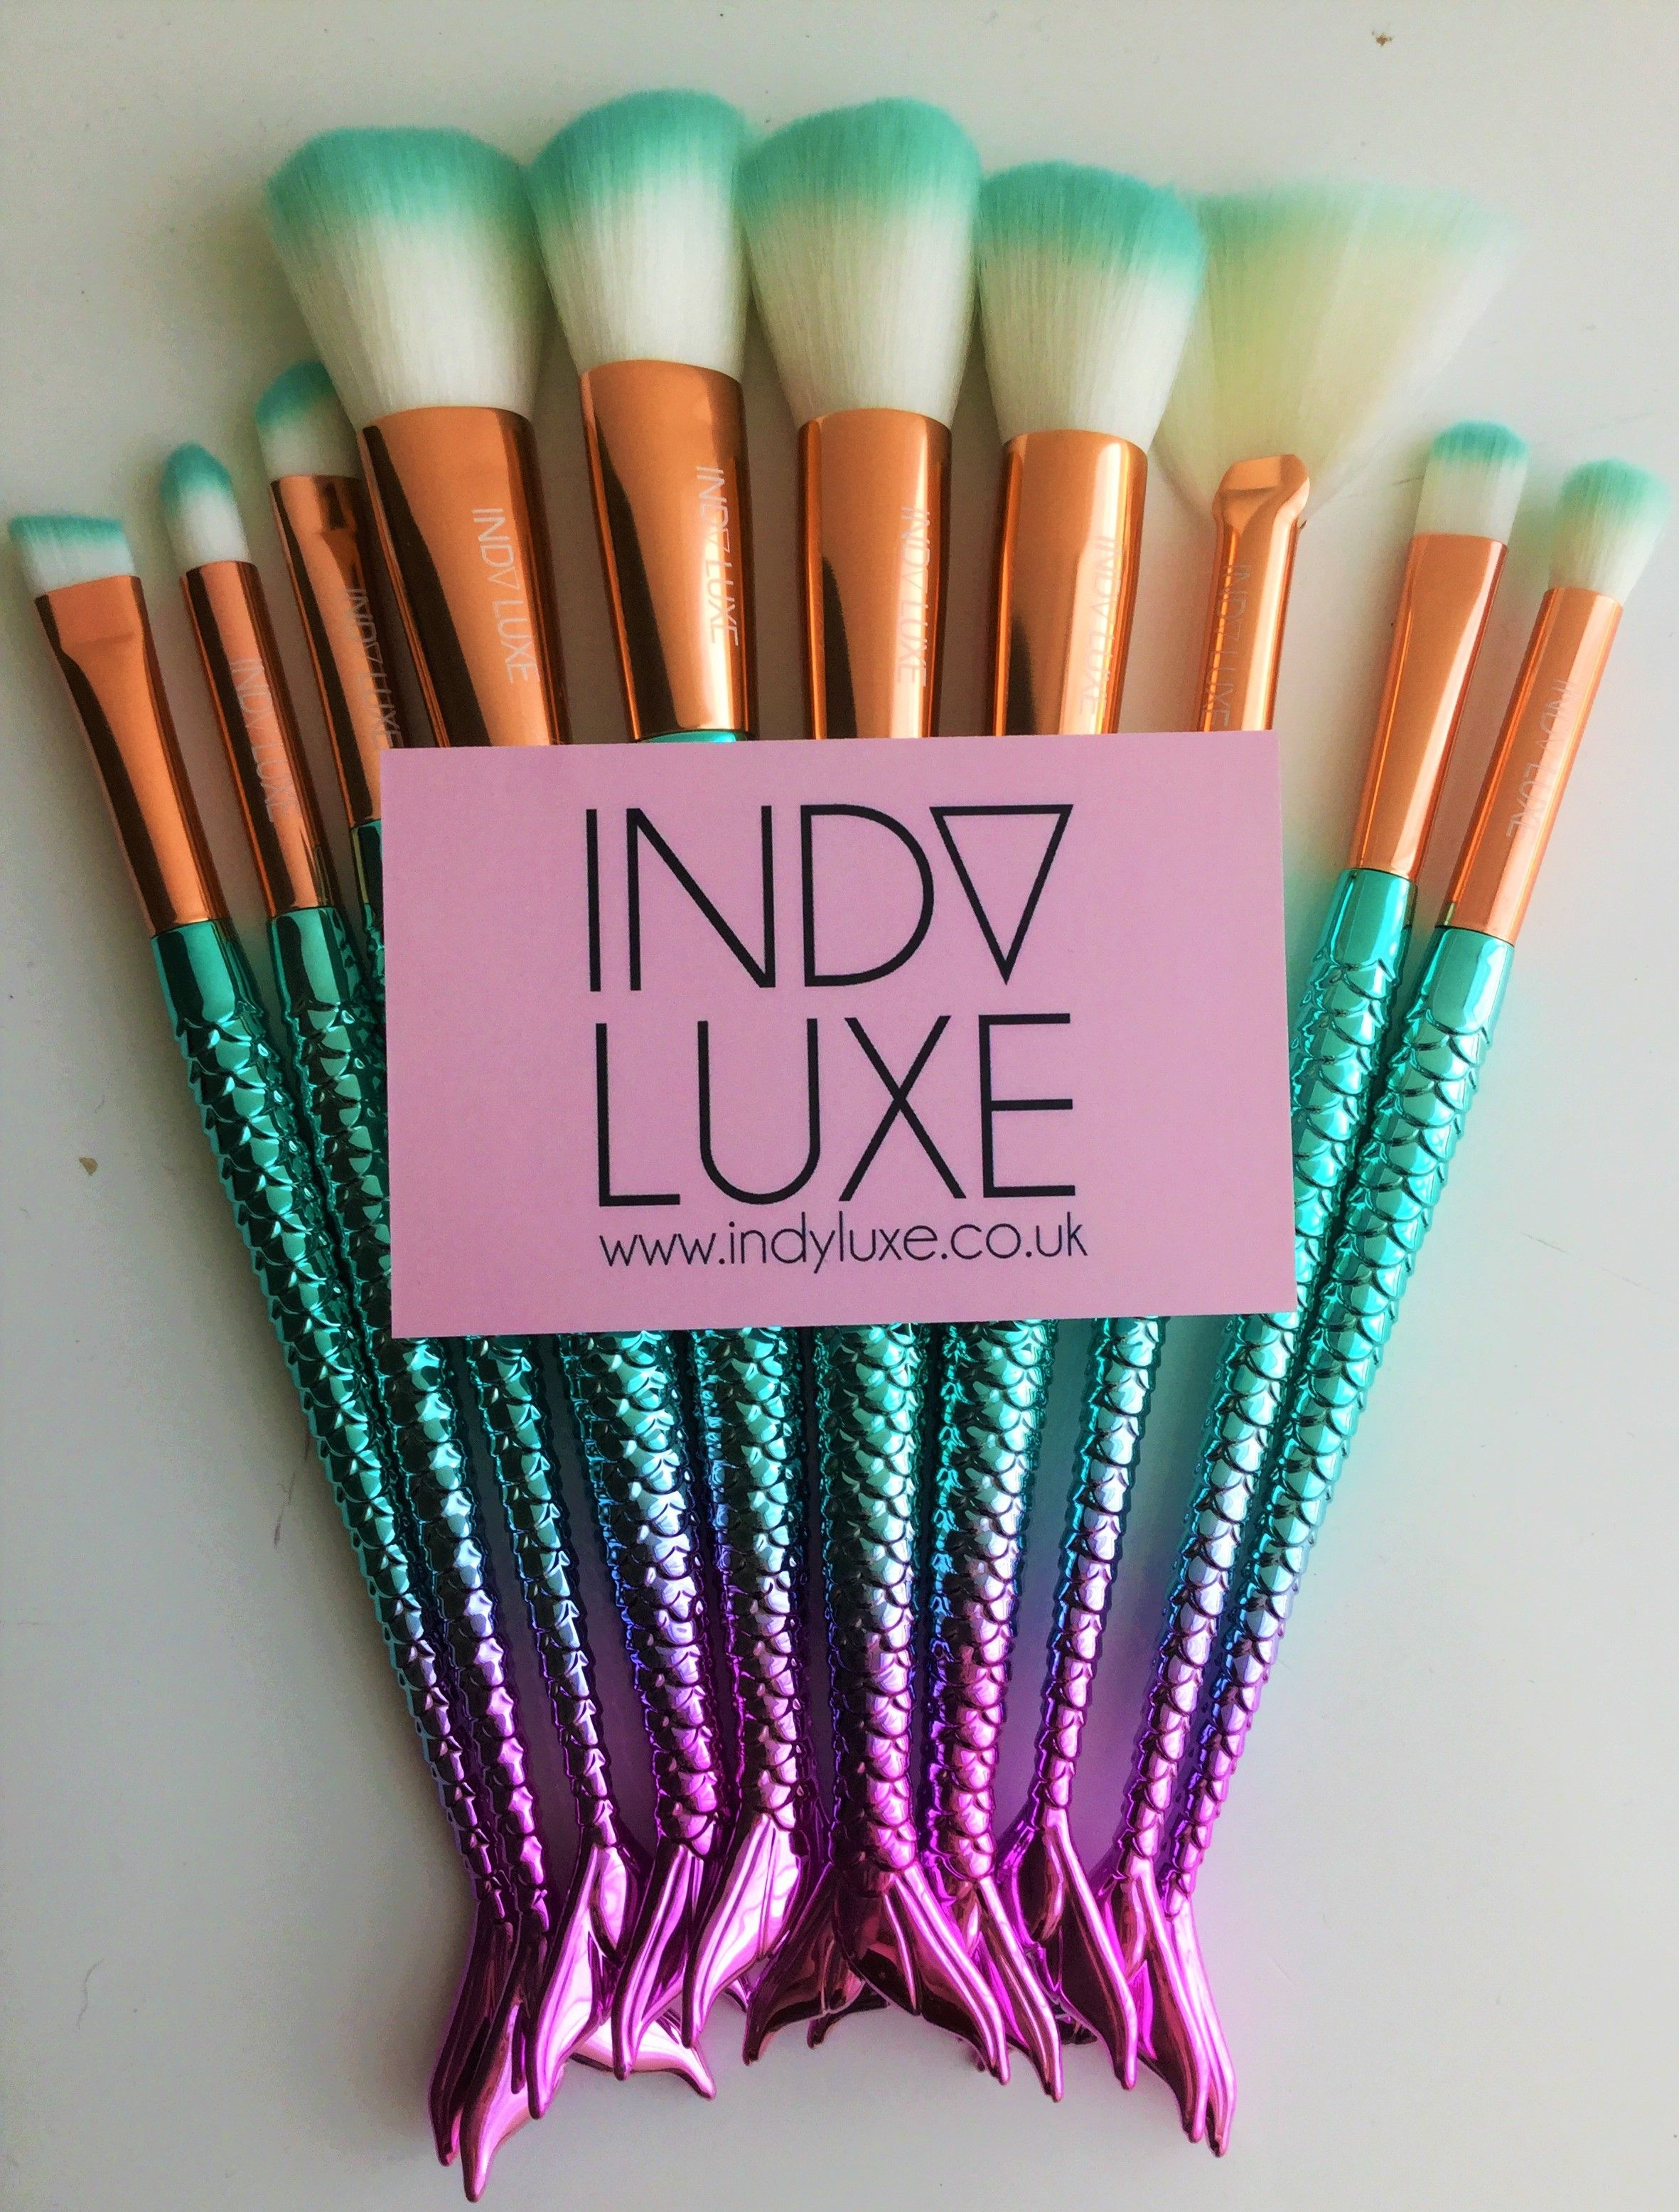 Indy Luxe Merbabe 10pcs Brush set (With images) Indie